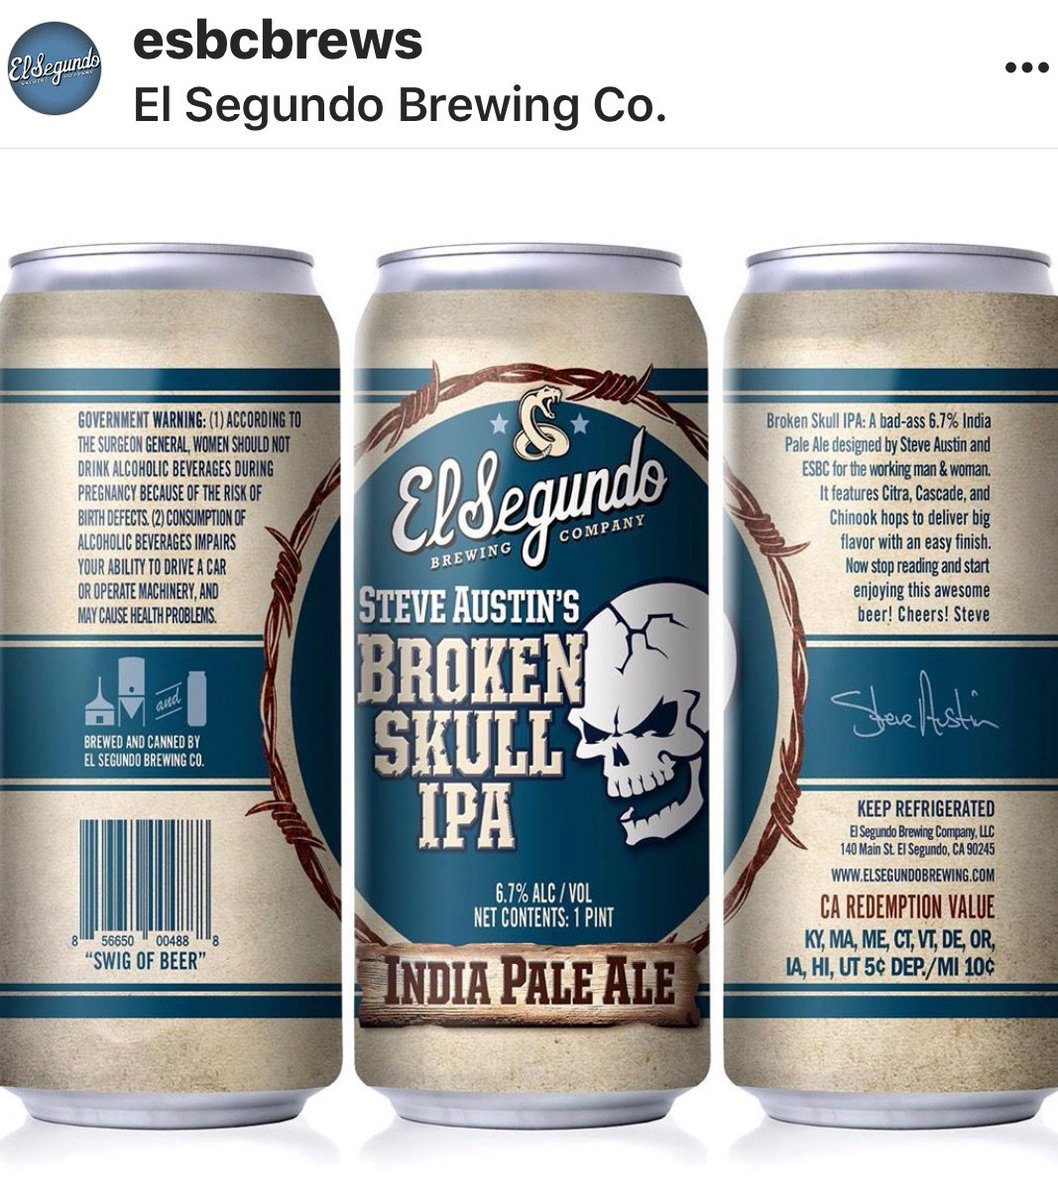 Broken Skull IPA now available in 16oz can. @ESBCBrews